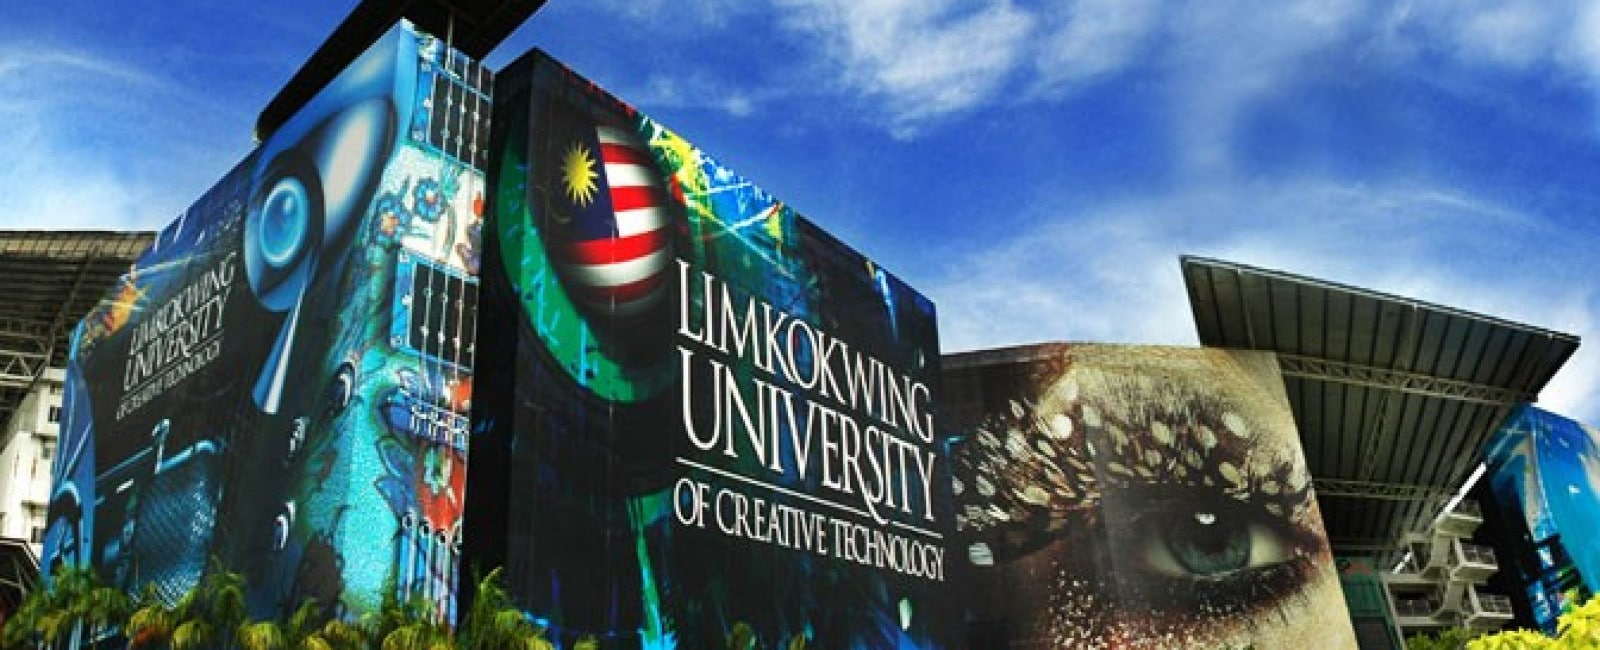 Limkokwing University of Creative Technology